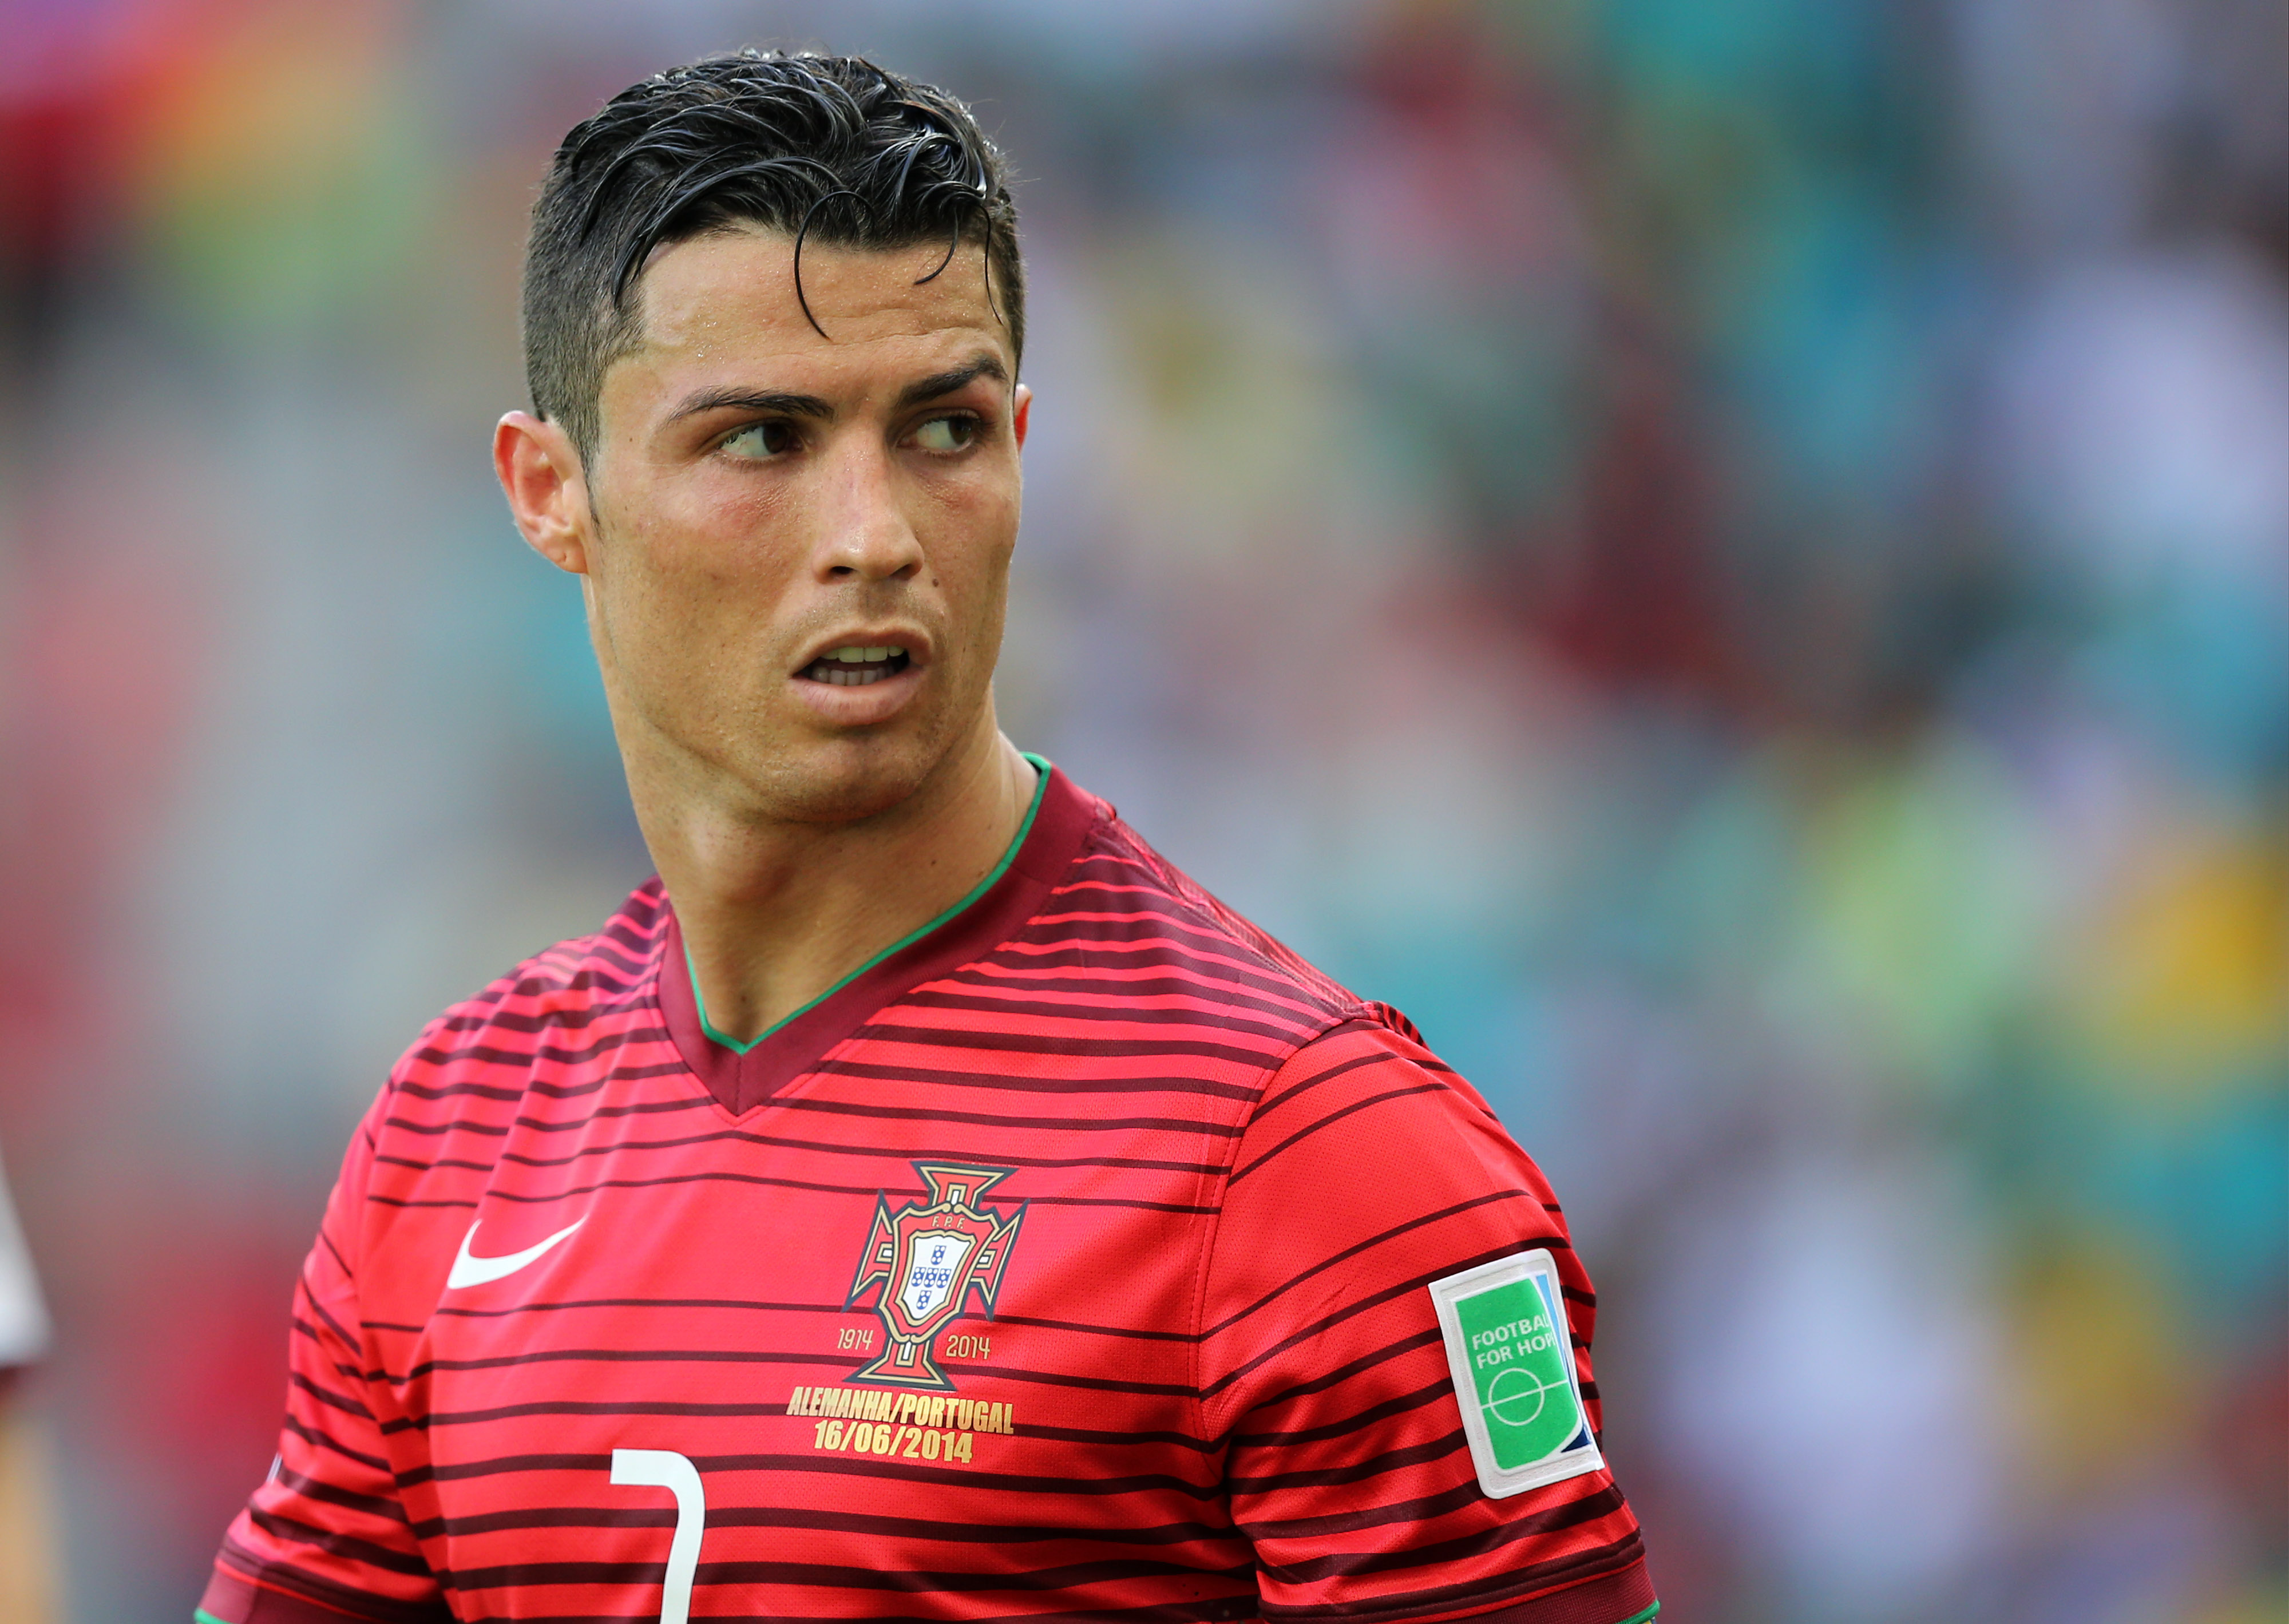 SALVADOR, BRAZIL - JUNE 16: Cristiano Ronaldo of Portugal looks on during the 2014 FIFA World Cup Brazil Group G match betwee